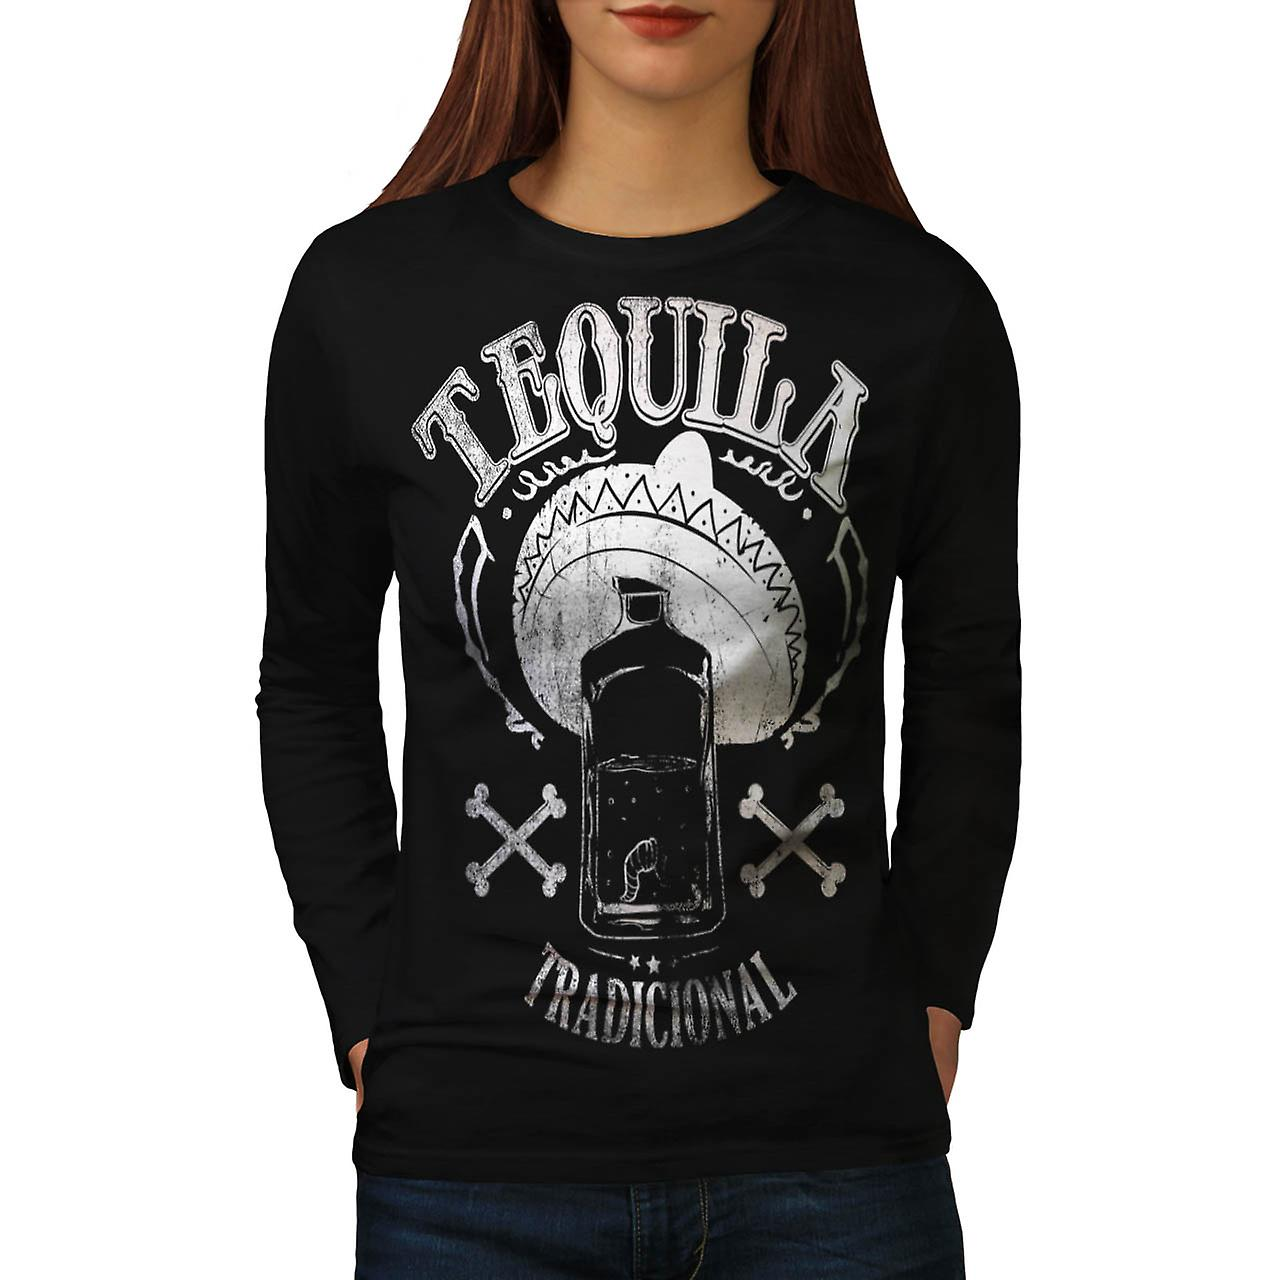 Tequila traditionnelles mexicaines Fun noir manches longues T-shirt | Wellcoda